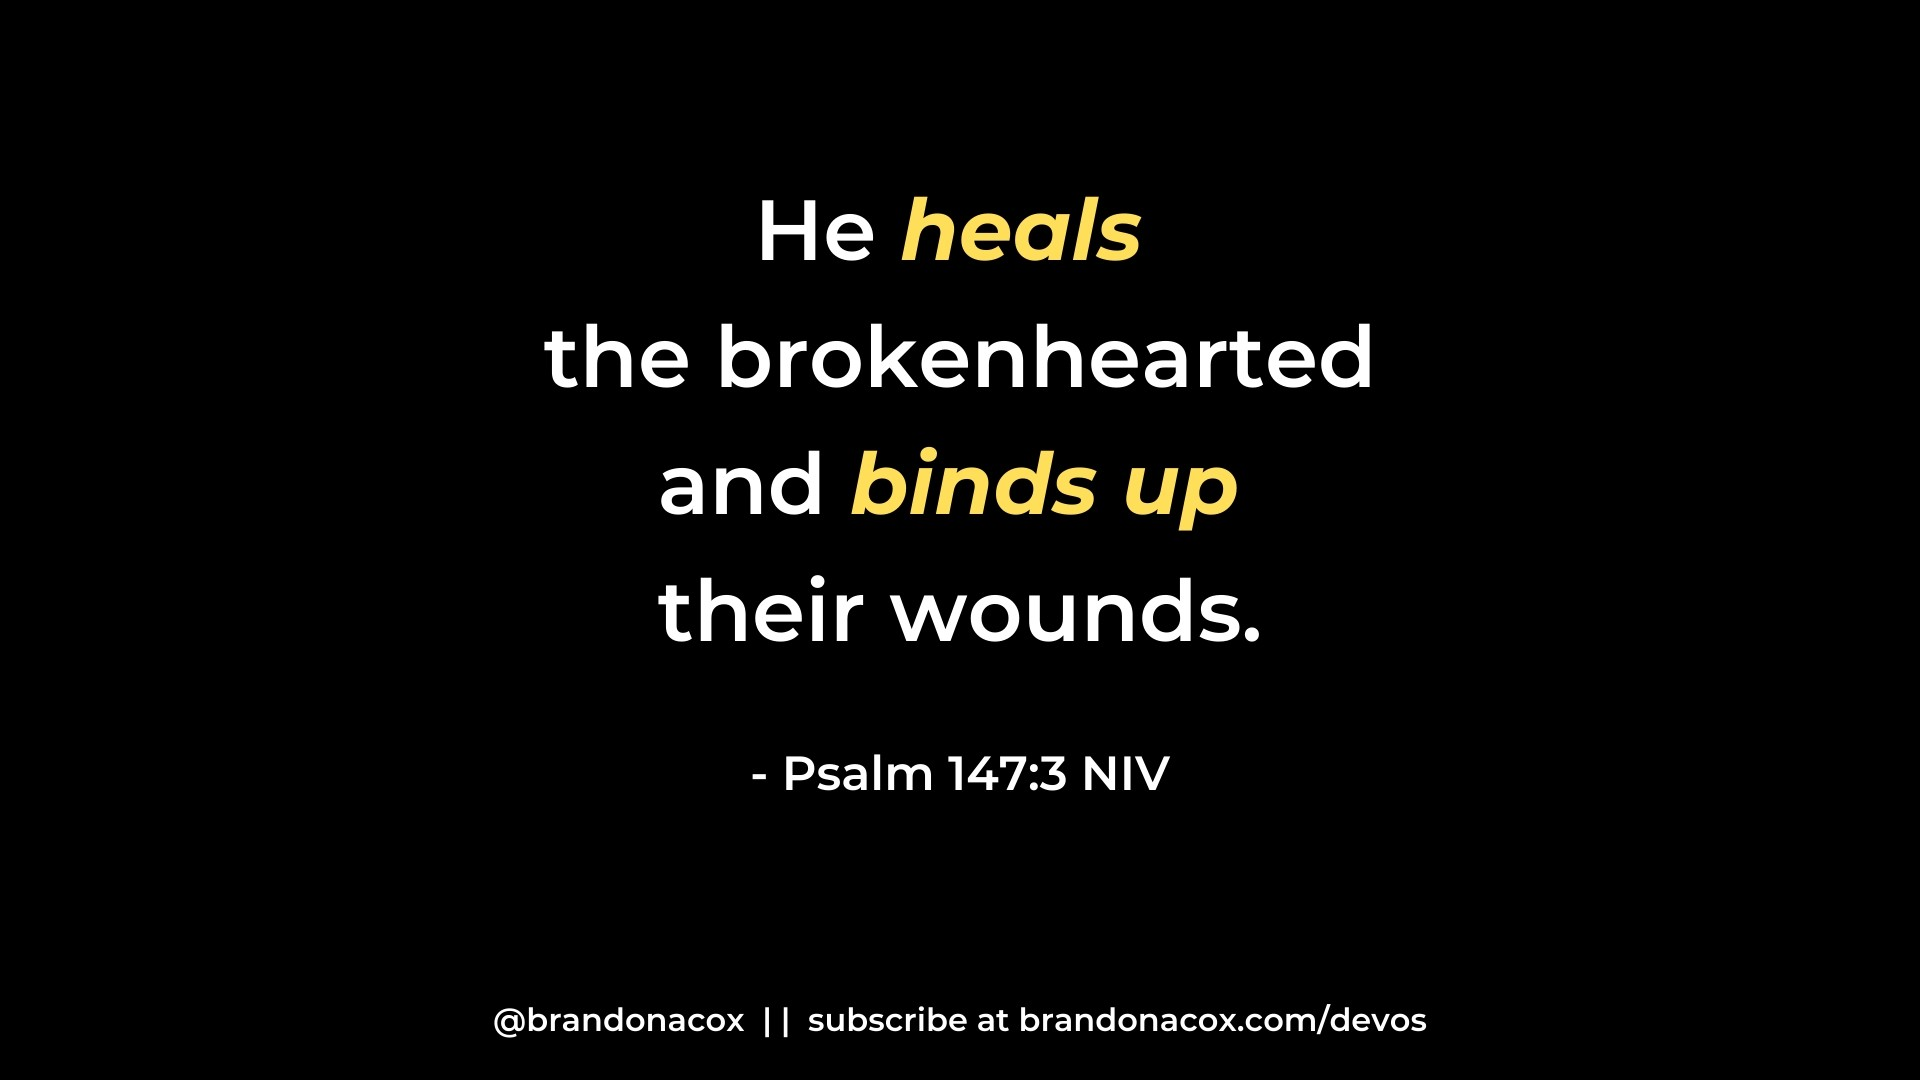 God Heals and Binds Up